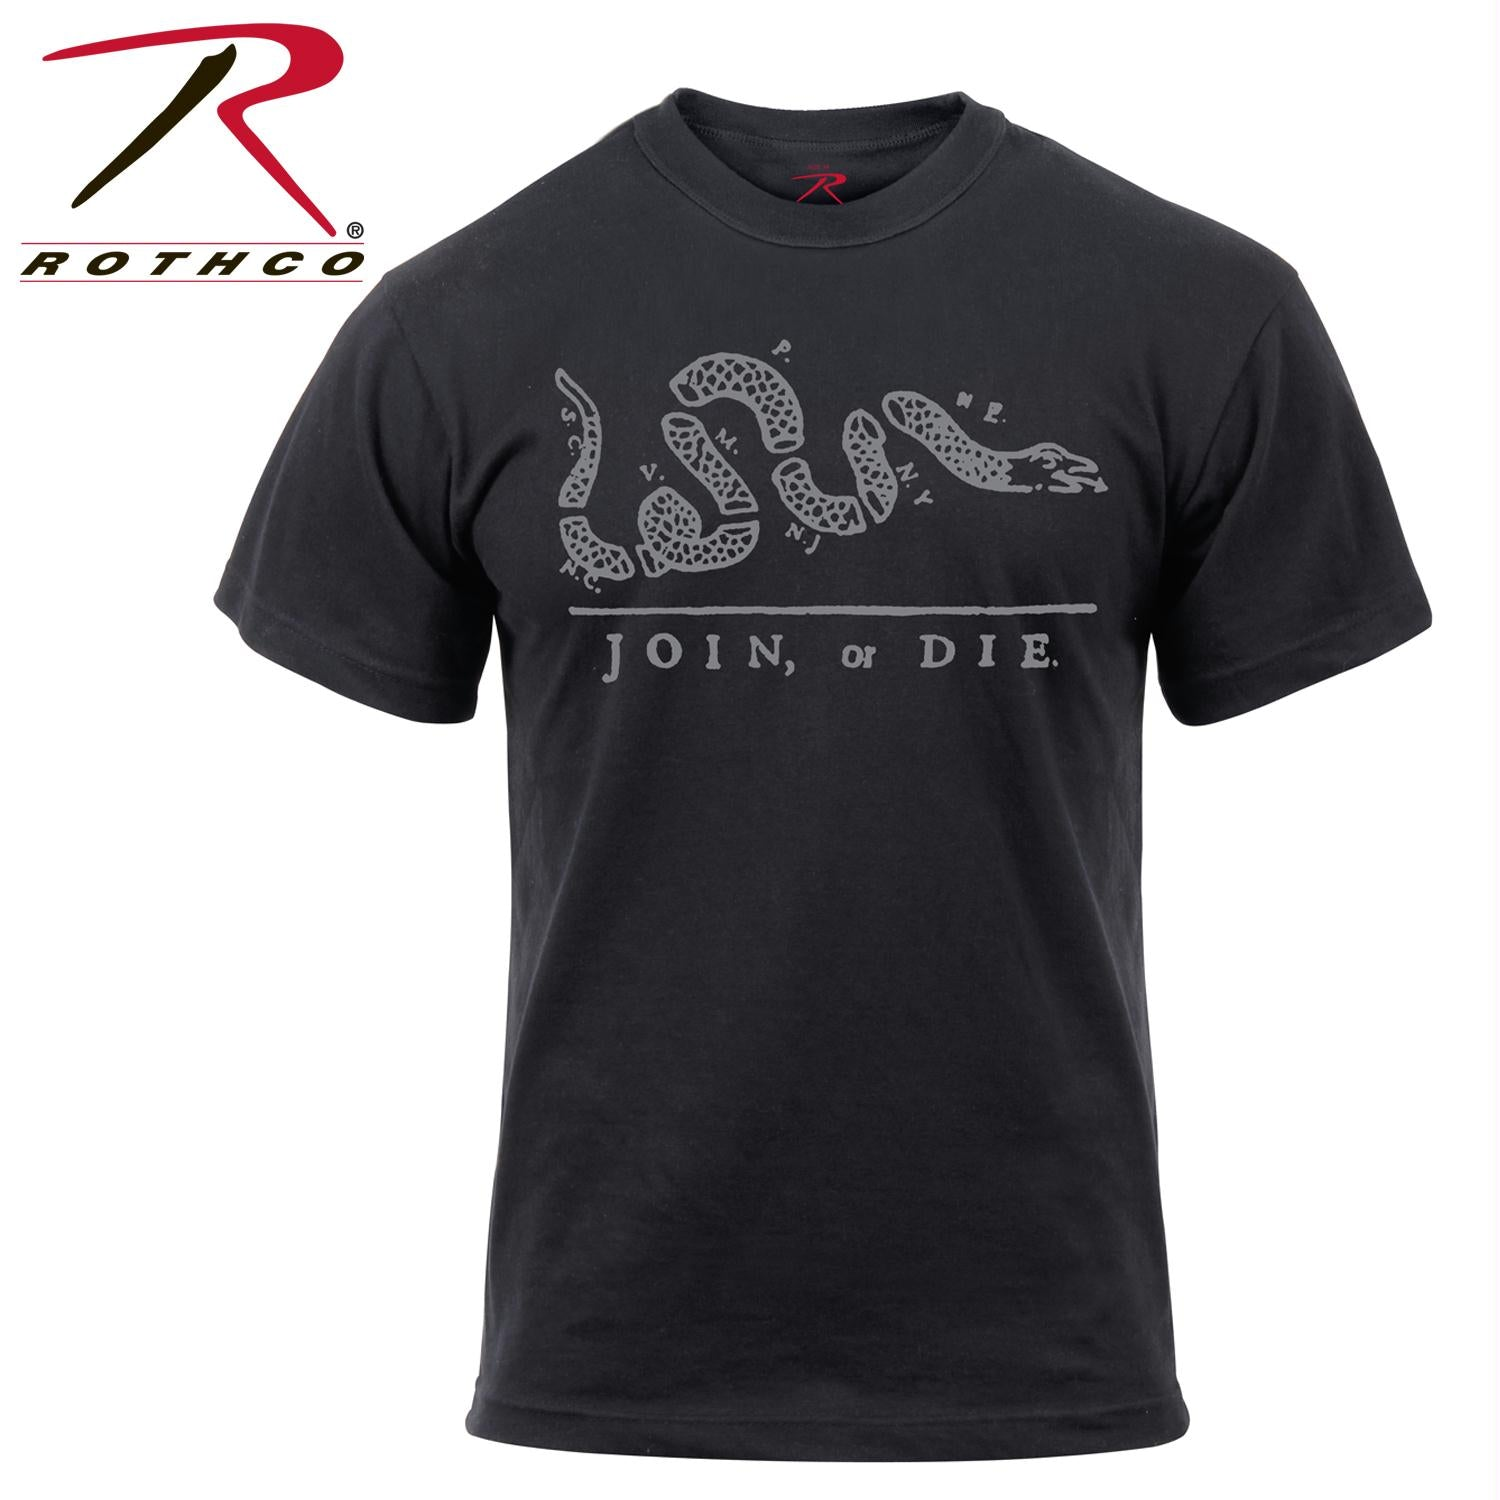 Rothco 'Join or Die' T-Shirt - XL